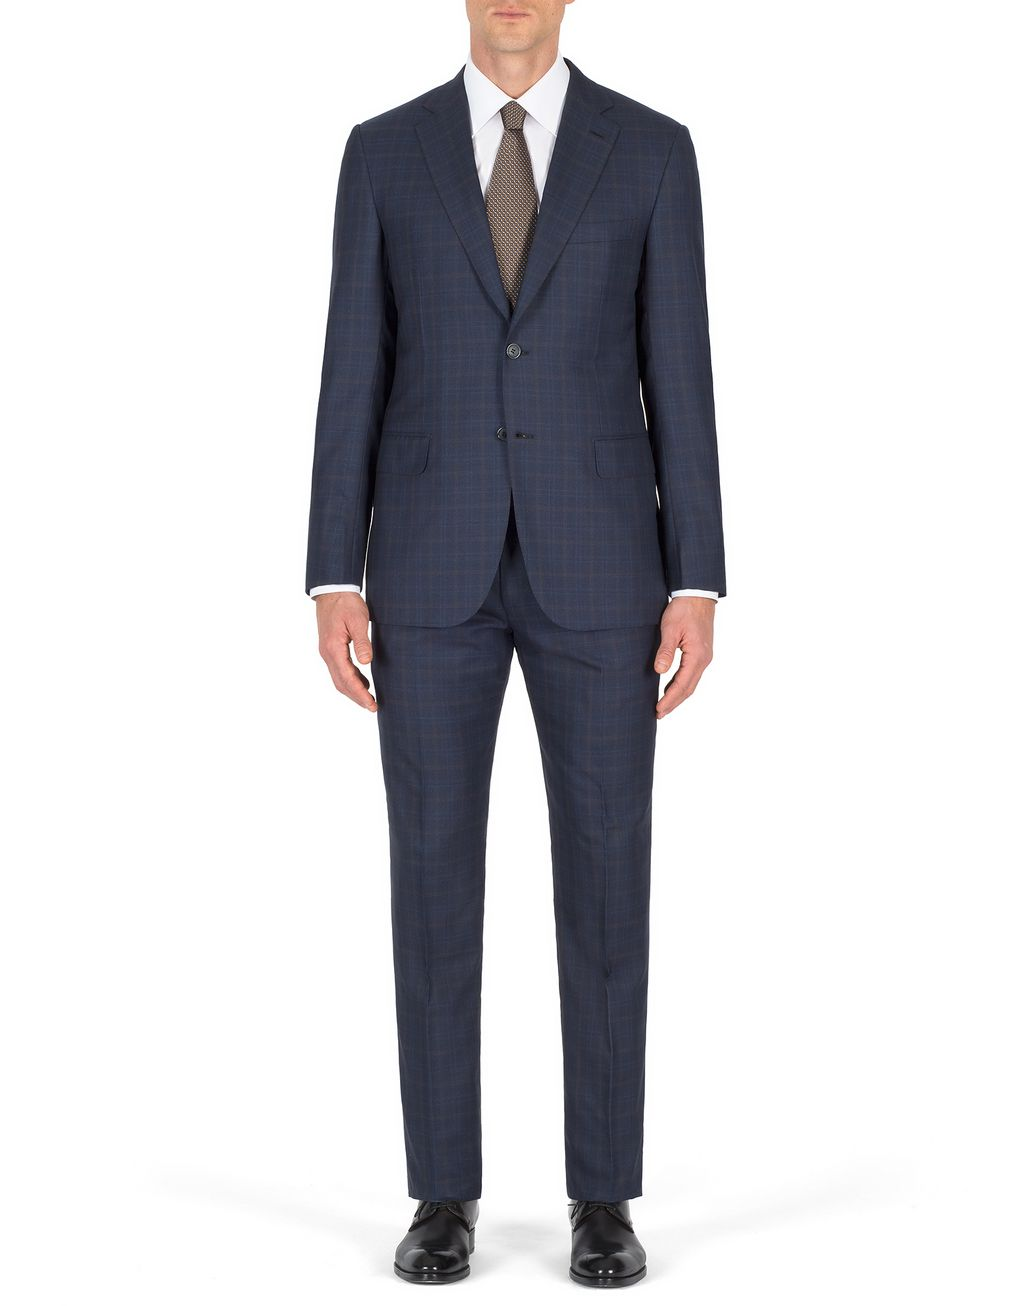 BRIONI Navy Blue Subtle Check Brunico Suit Suits & Jackets Man r